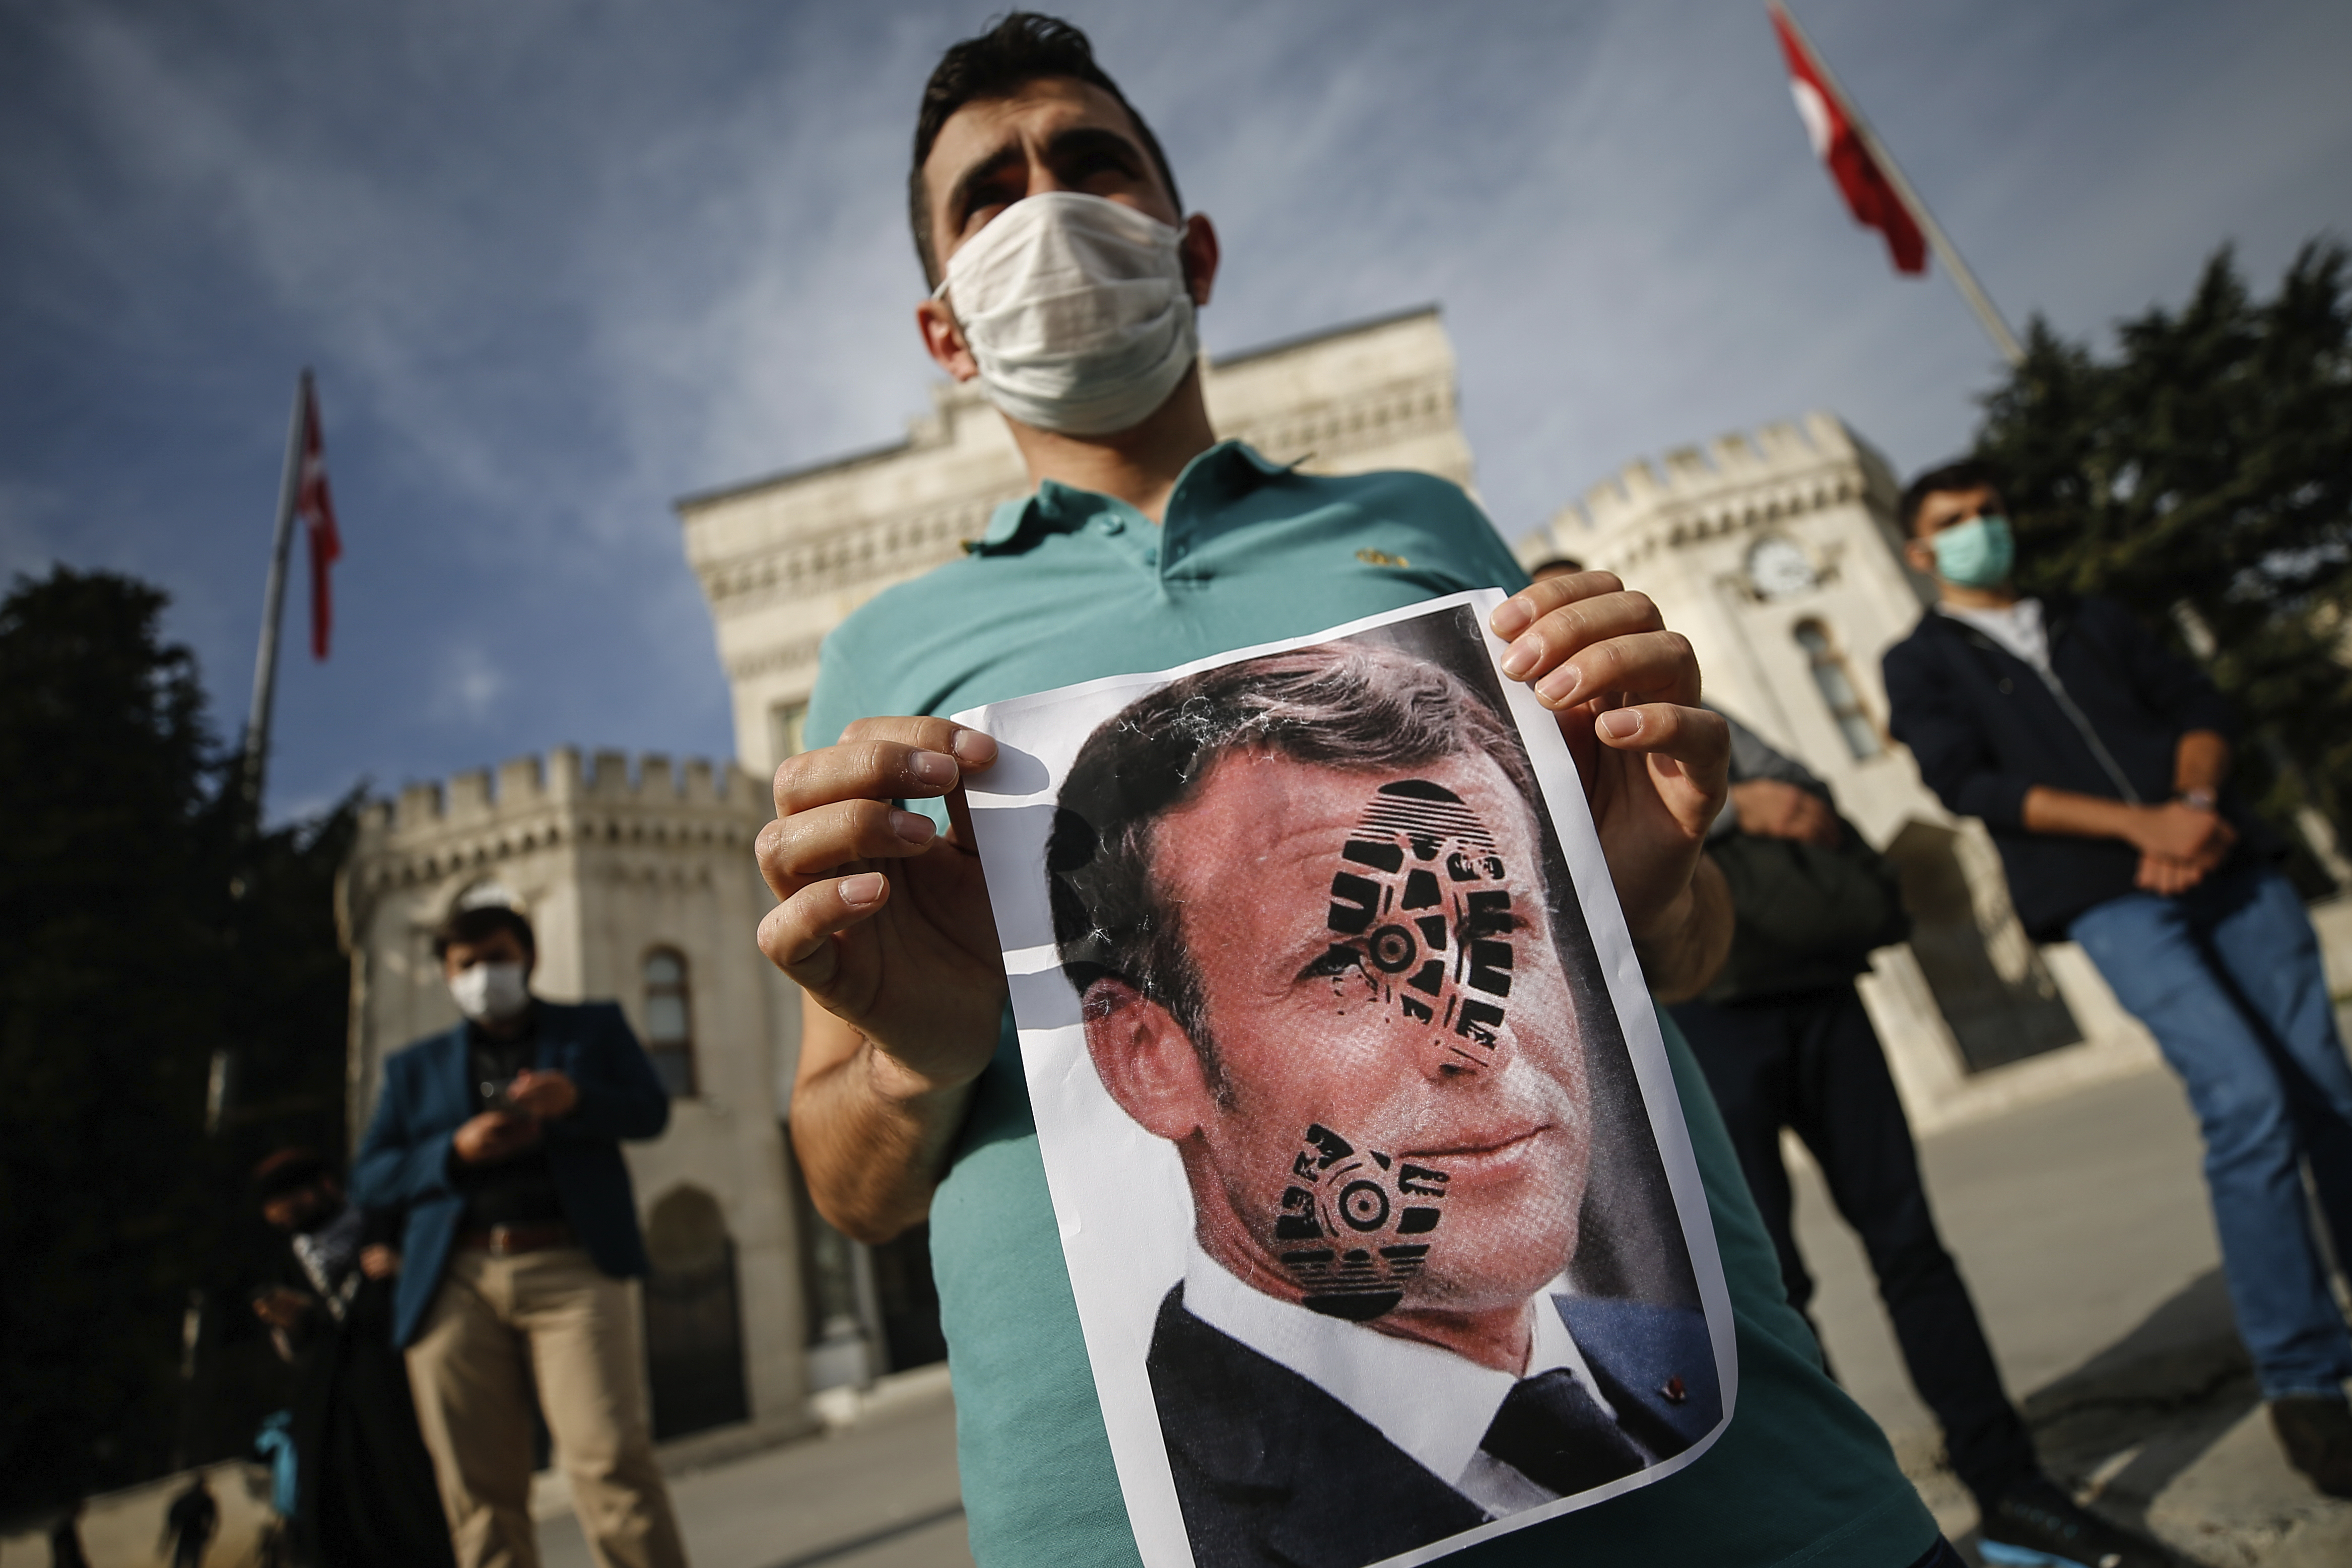 A youth holds a photograph of France's President Emmanuel Macron, stamped with a shoe mark, during a protest against France in Istanbul, Sunday, Oct. 25, 2020.